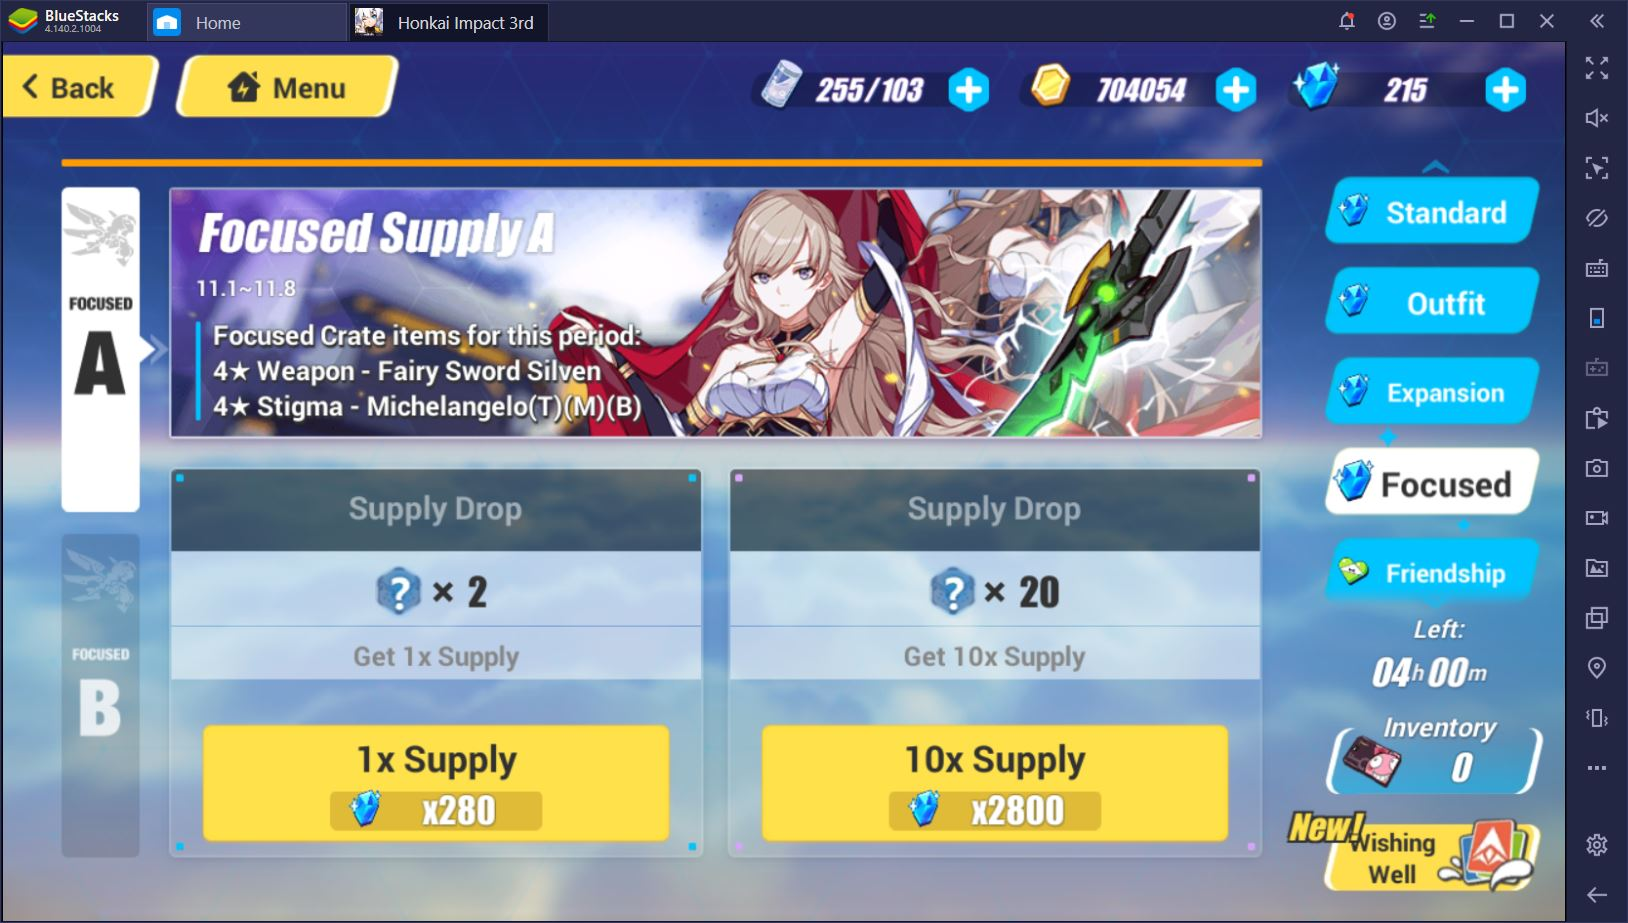 Honkai Impact 3rd on PC: A Guide to Currencies and Resources for the Early- to Mid-Game